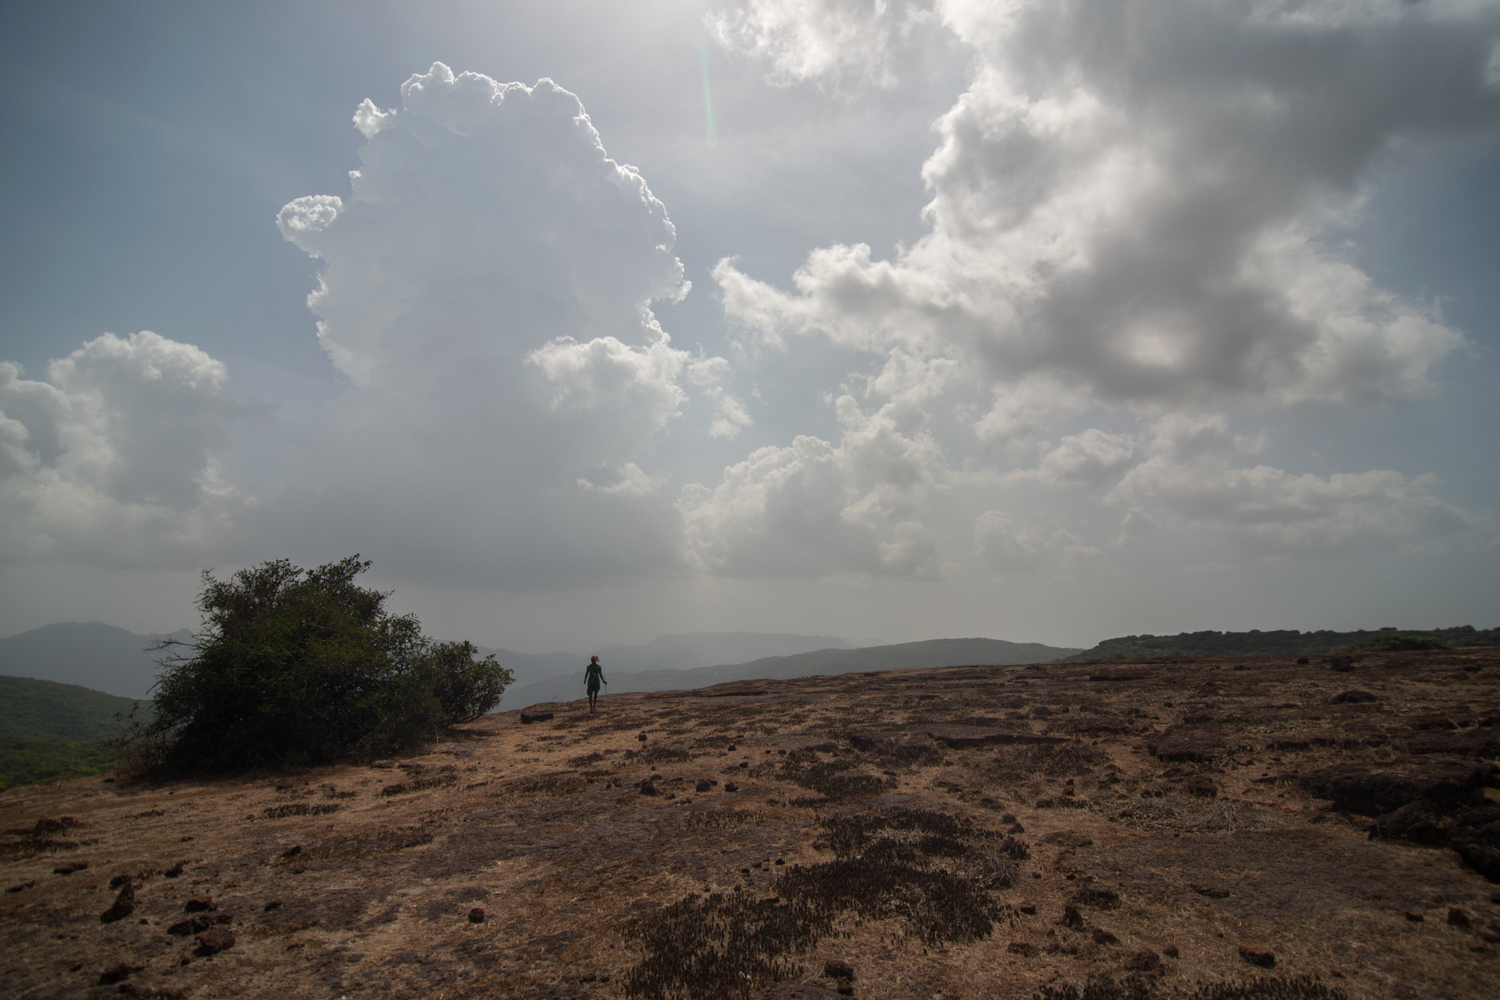 From tiny hamlets of the Koyna Tiger reserve, women bring their livestock to graze on the plateau. This woman stands on the edge of the plateau looking for her cattle.